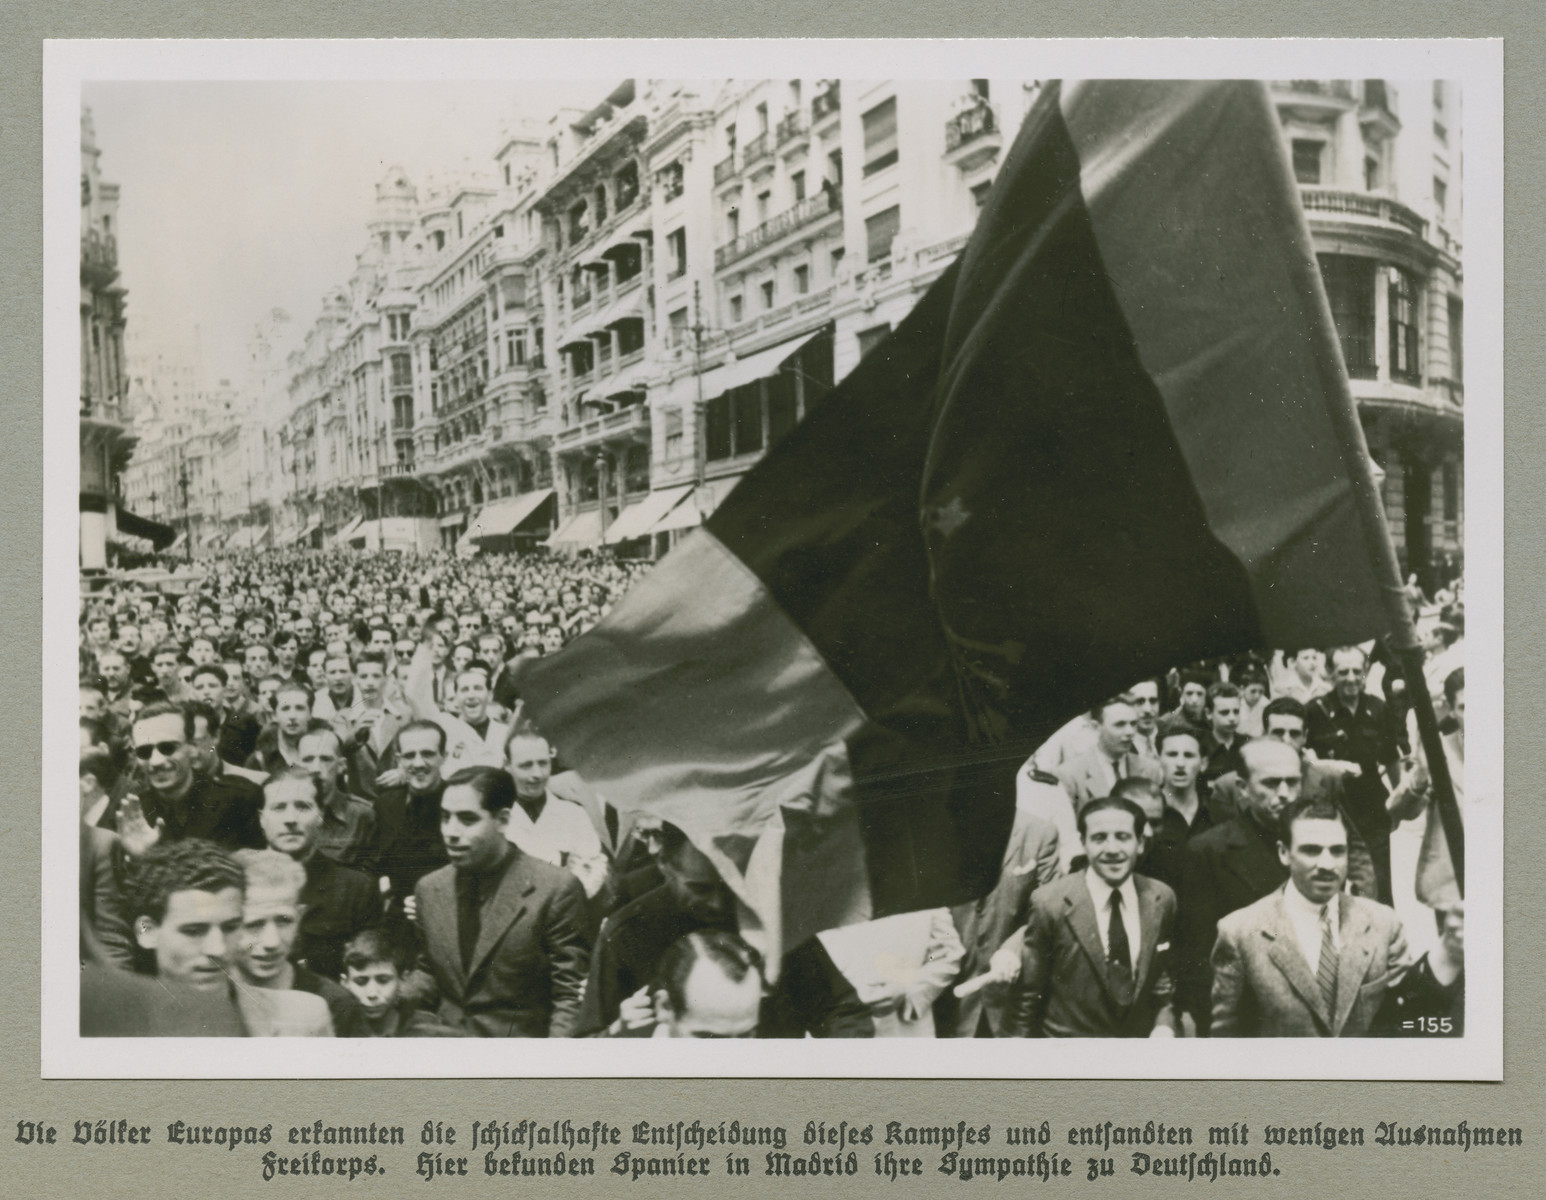 Spaniards crowd a Madrid street with a raised flag.   Original caption reads: The people of Europe recognized the fateful decision of this war and formed, with few exceptions, Freikorps. Here, Spaniards in Madrid show their sympathy for Germany.